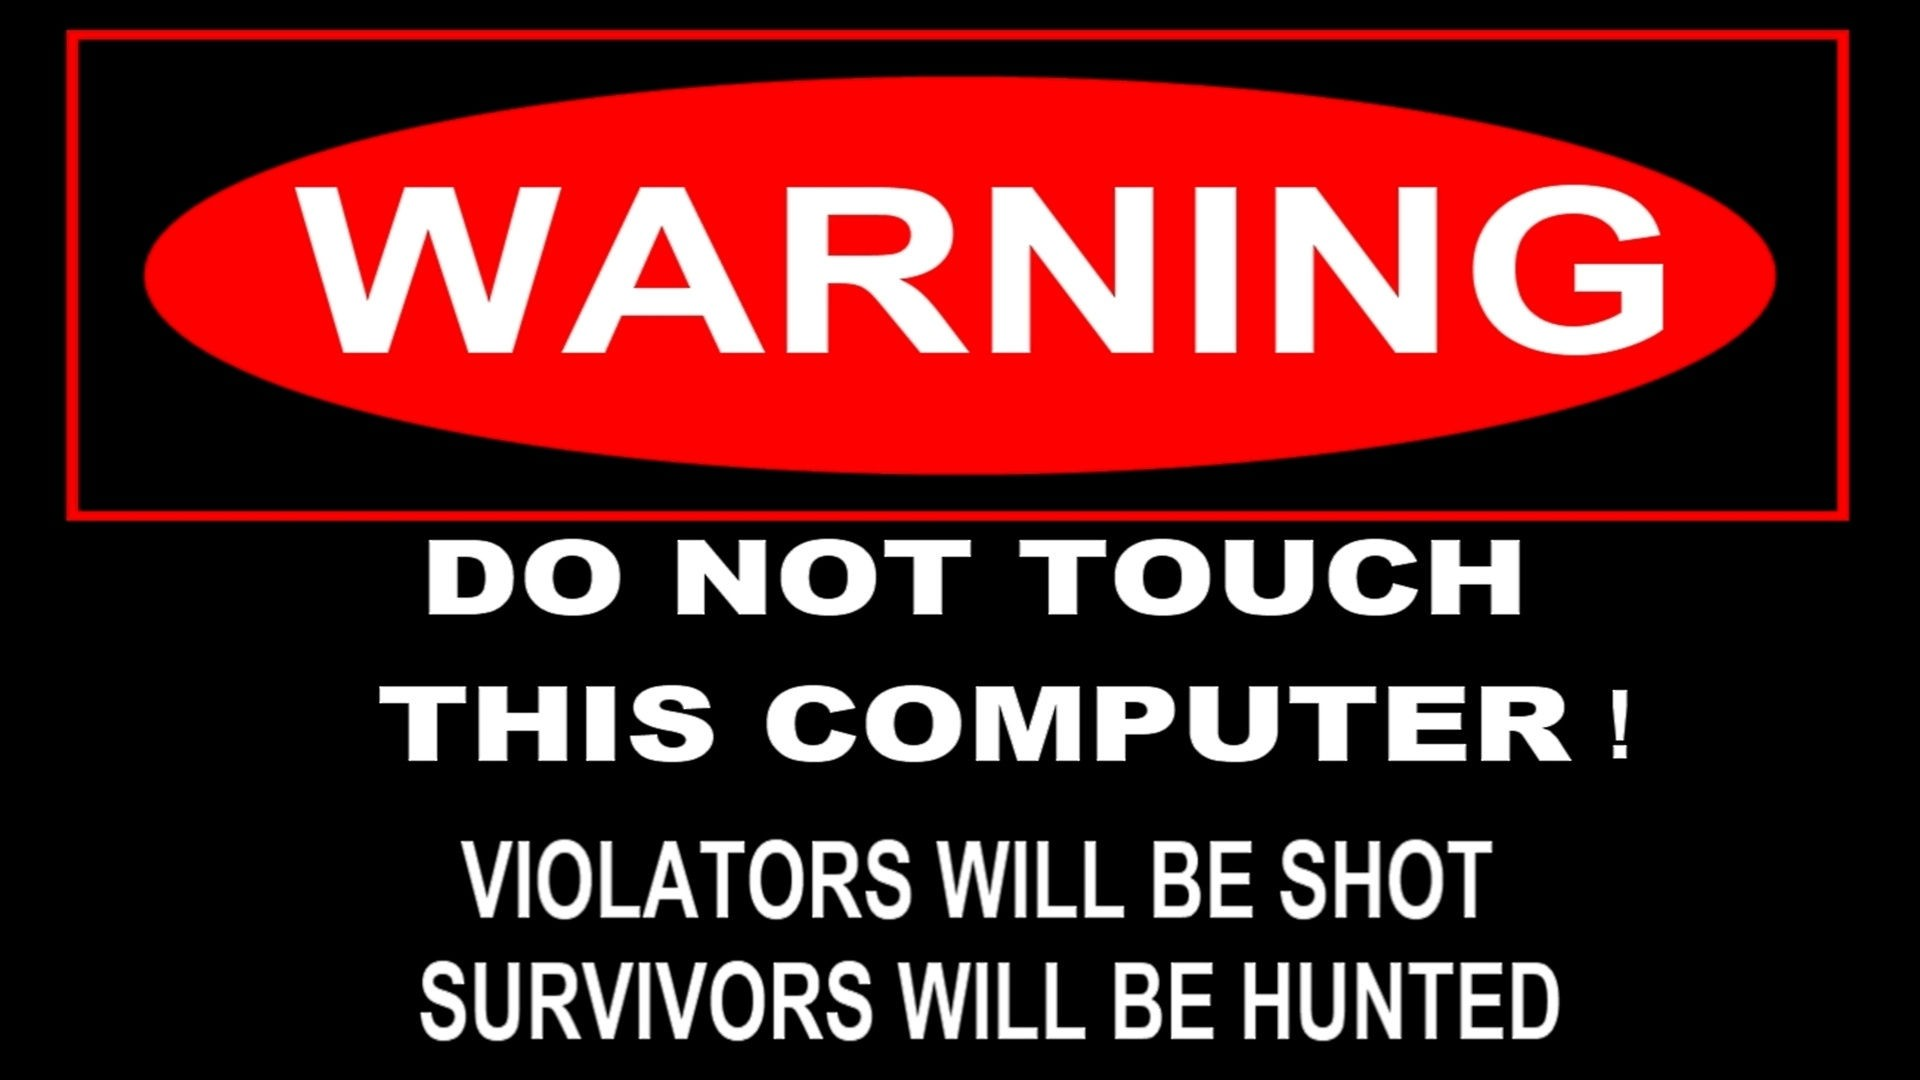 Warning Do Not Touch This Computer HD Wallpaper